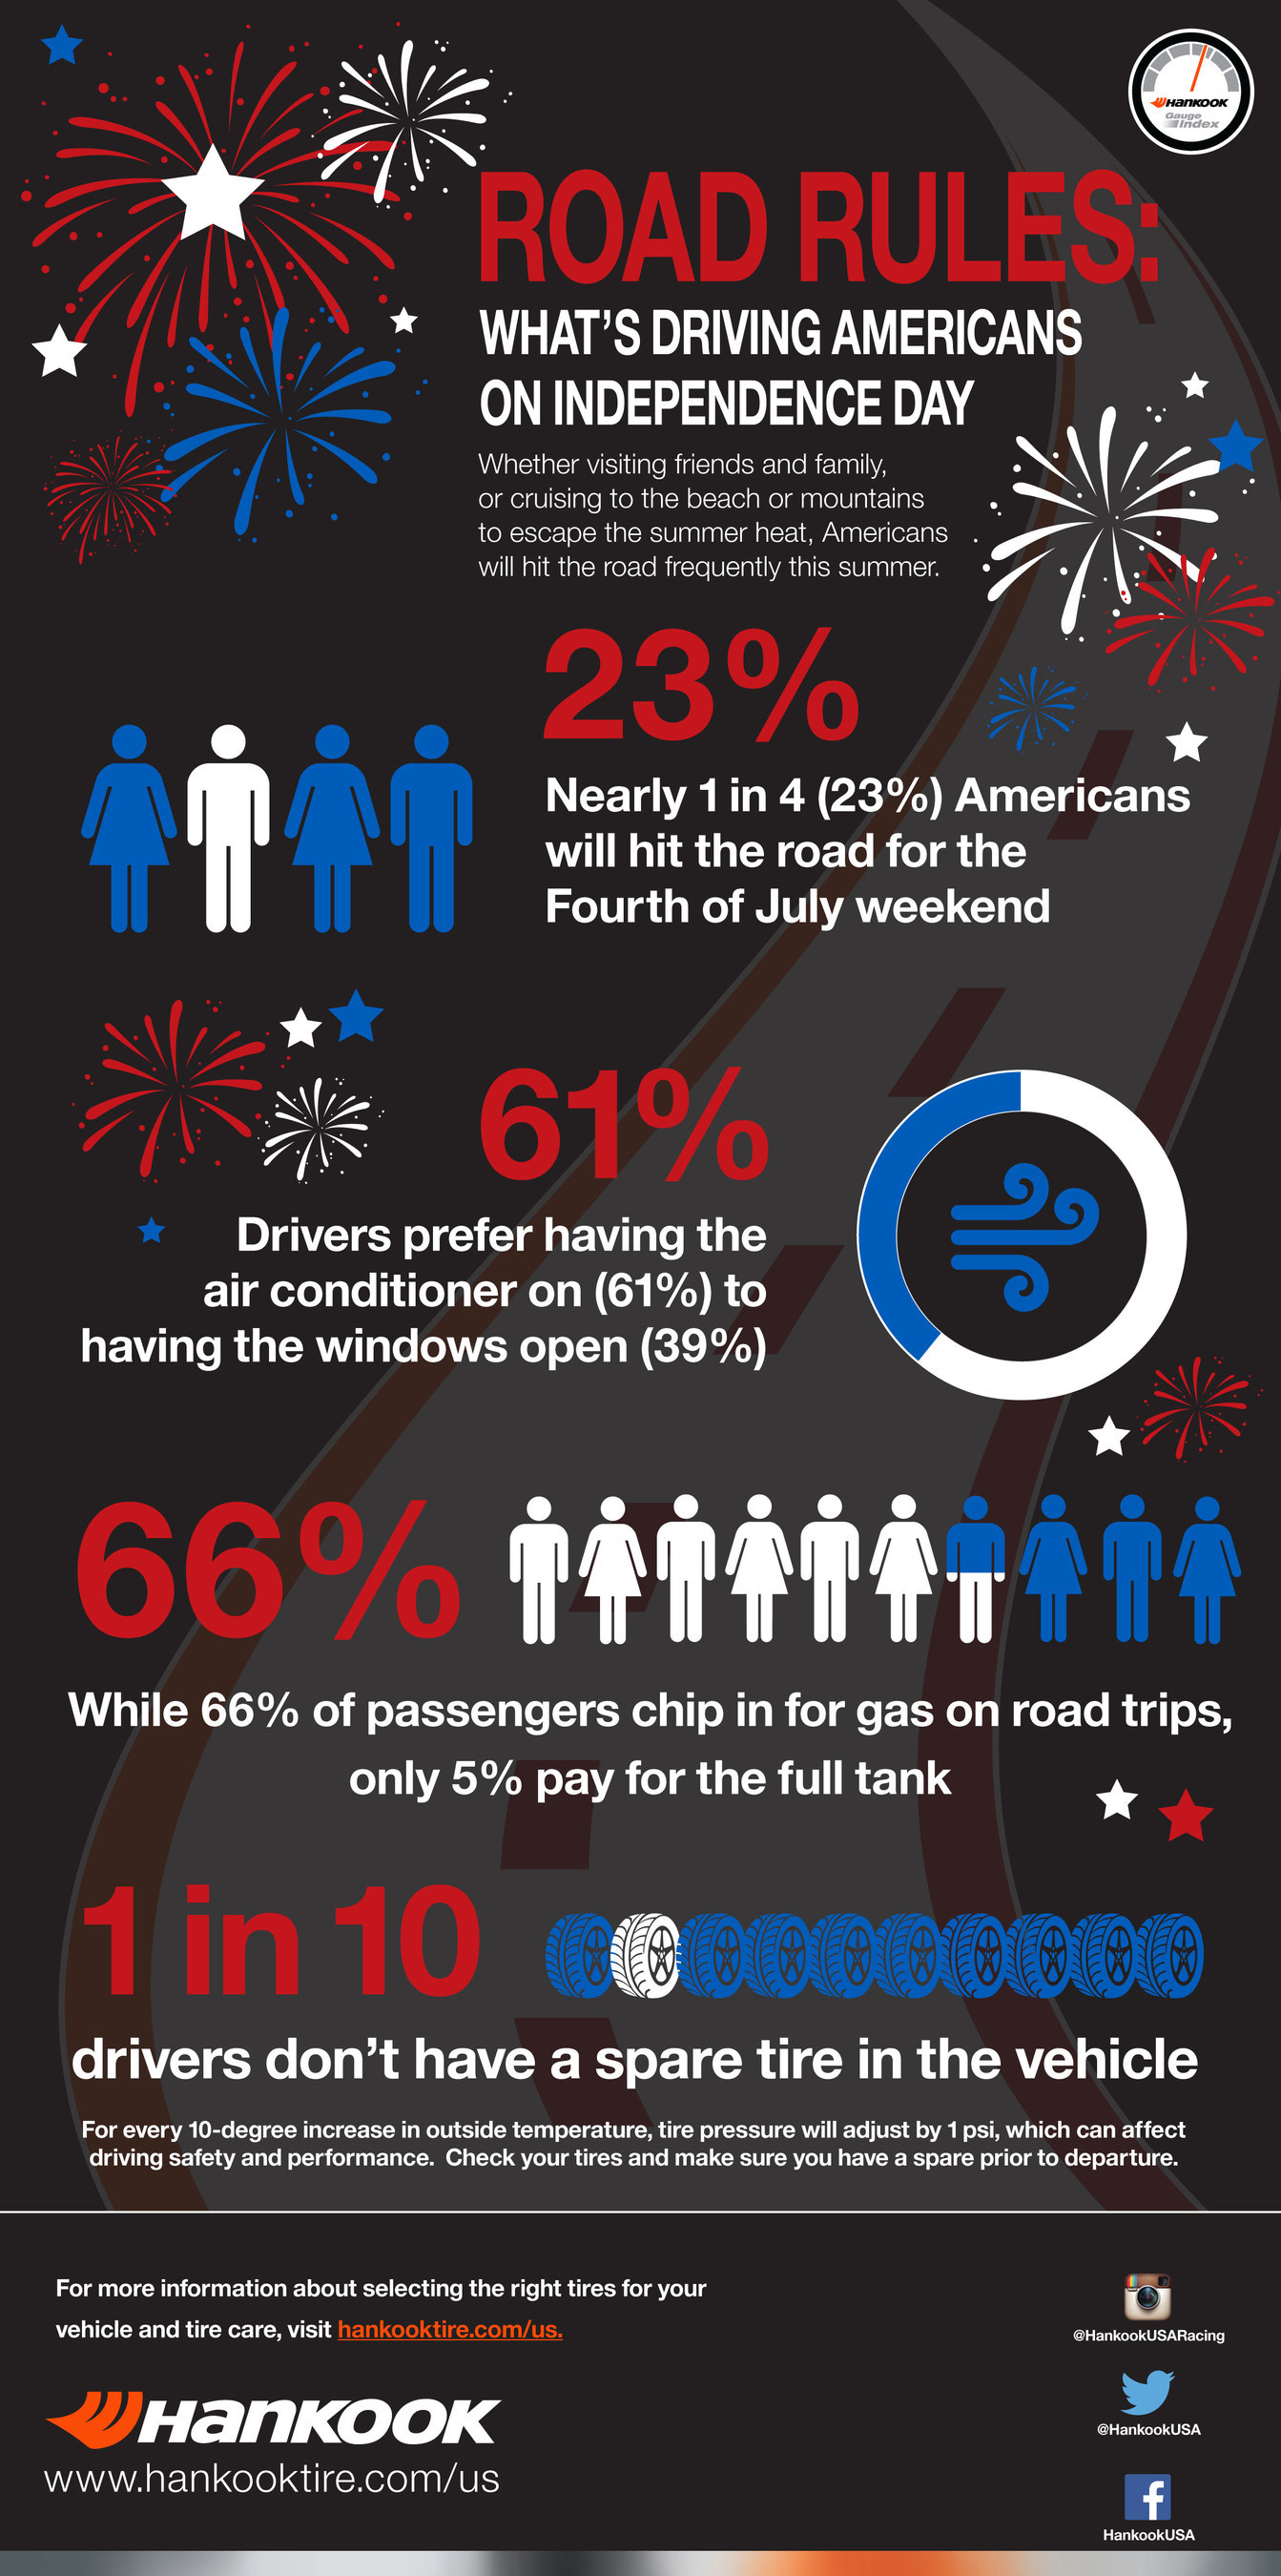 Hankook Tire today announced the findings of its latest Gauge Index which reveals how drivers plan to road trip over the July Fourth holiday weekend.